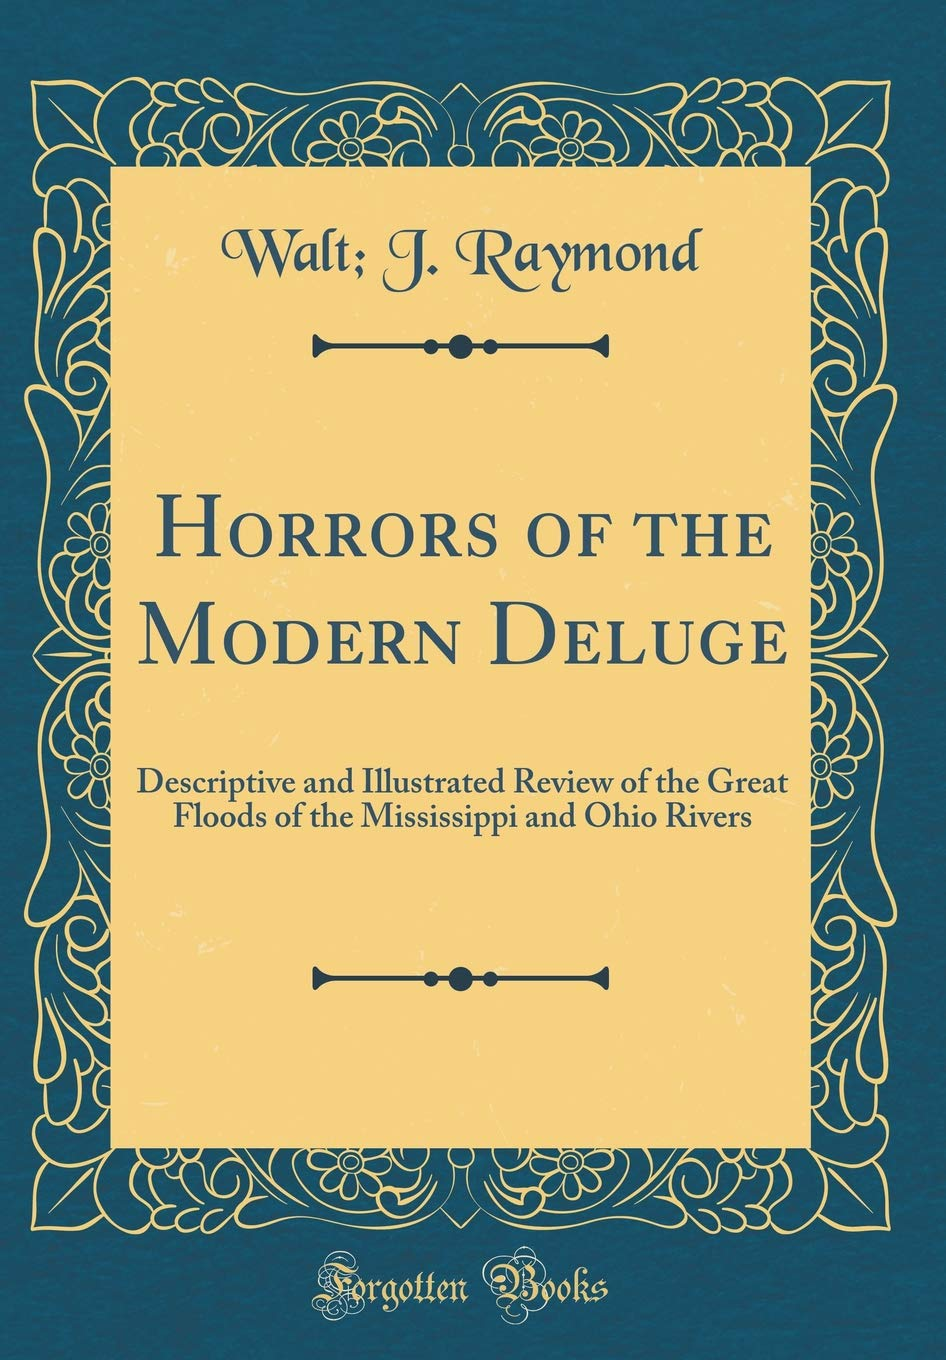 Horrors of the Modern Deluge: Descriptive and Illustrated